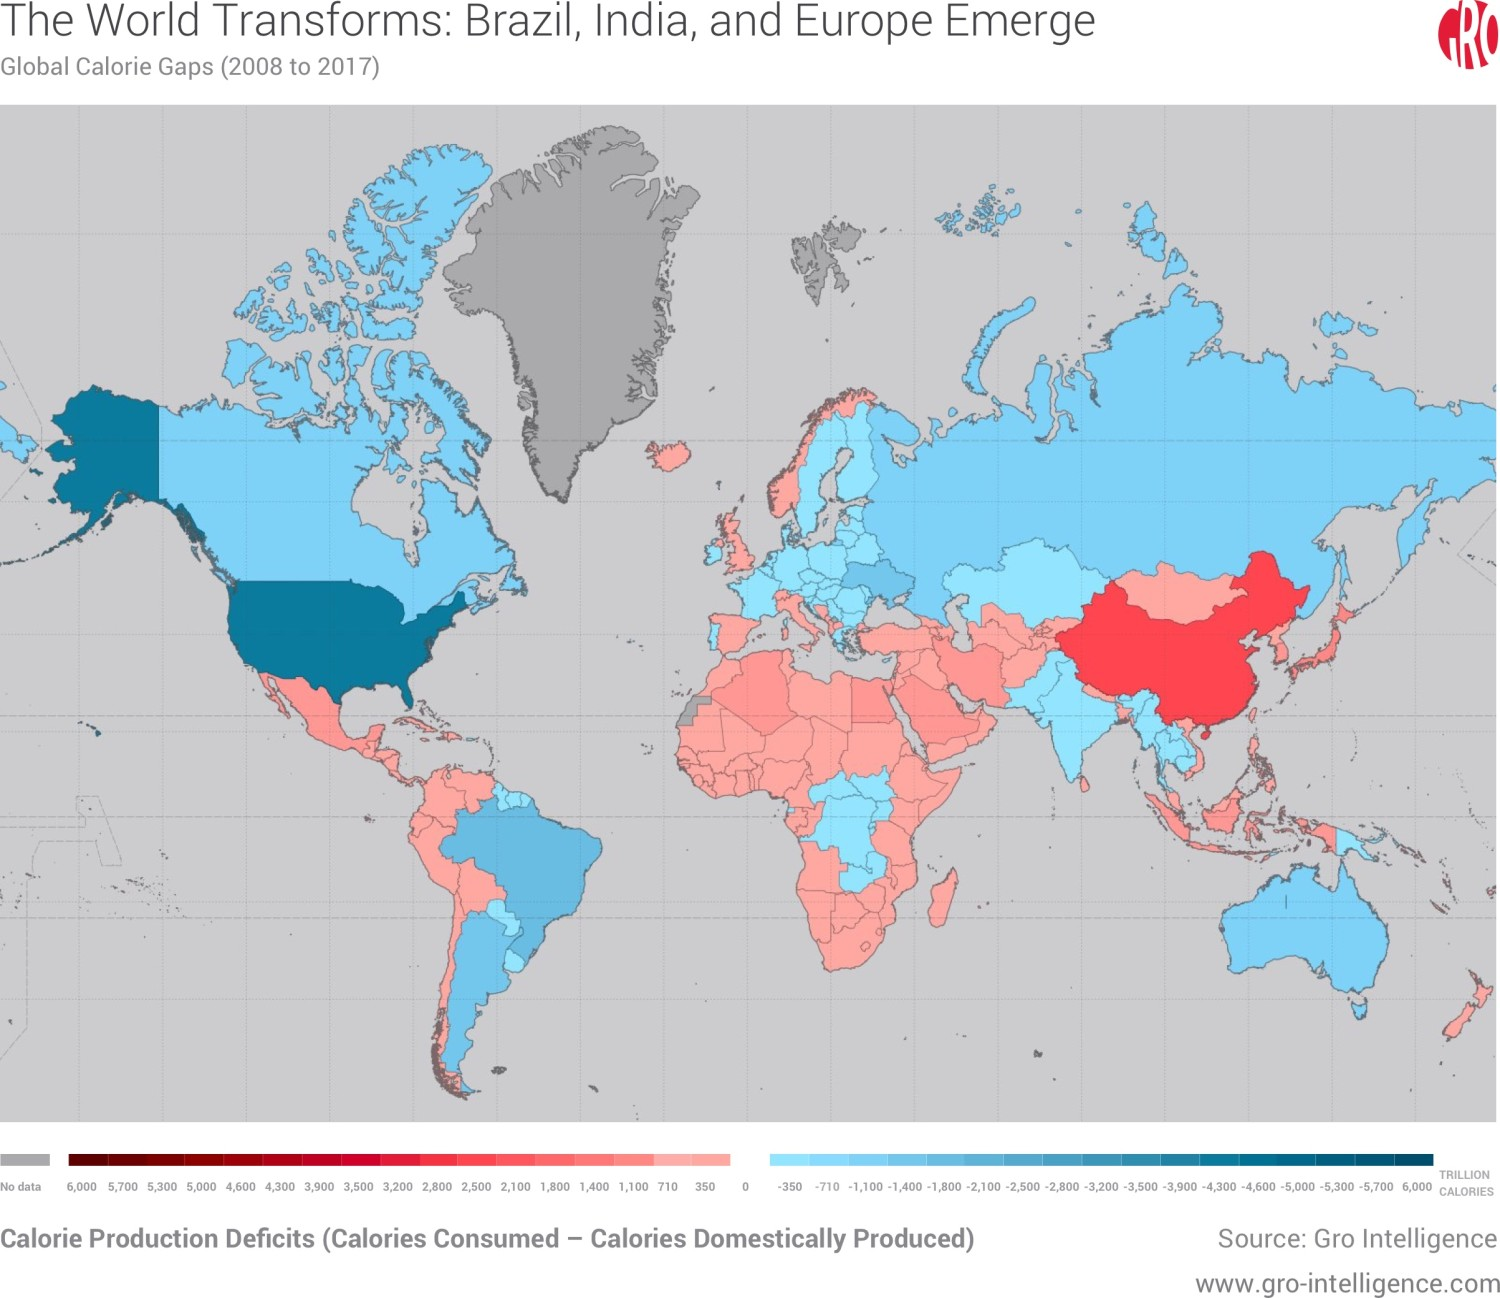 The World Transforms: Brazil, India, and Europe Emerge